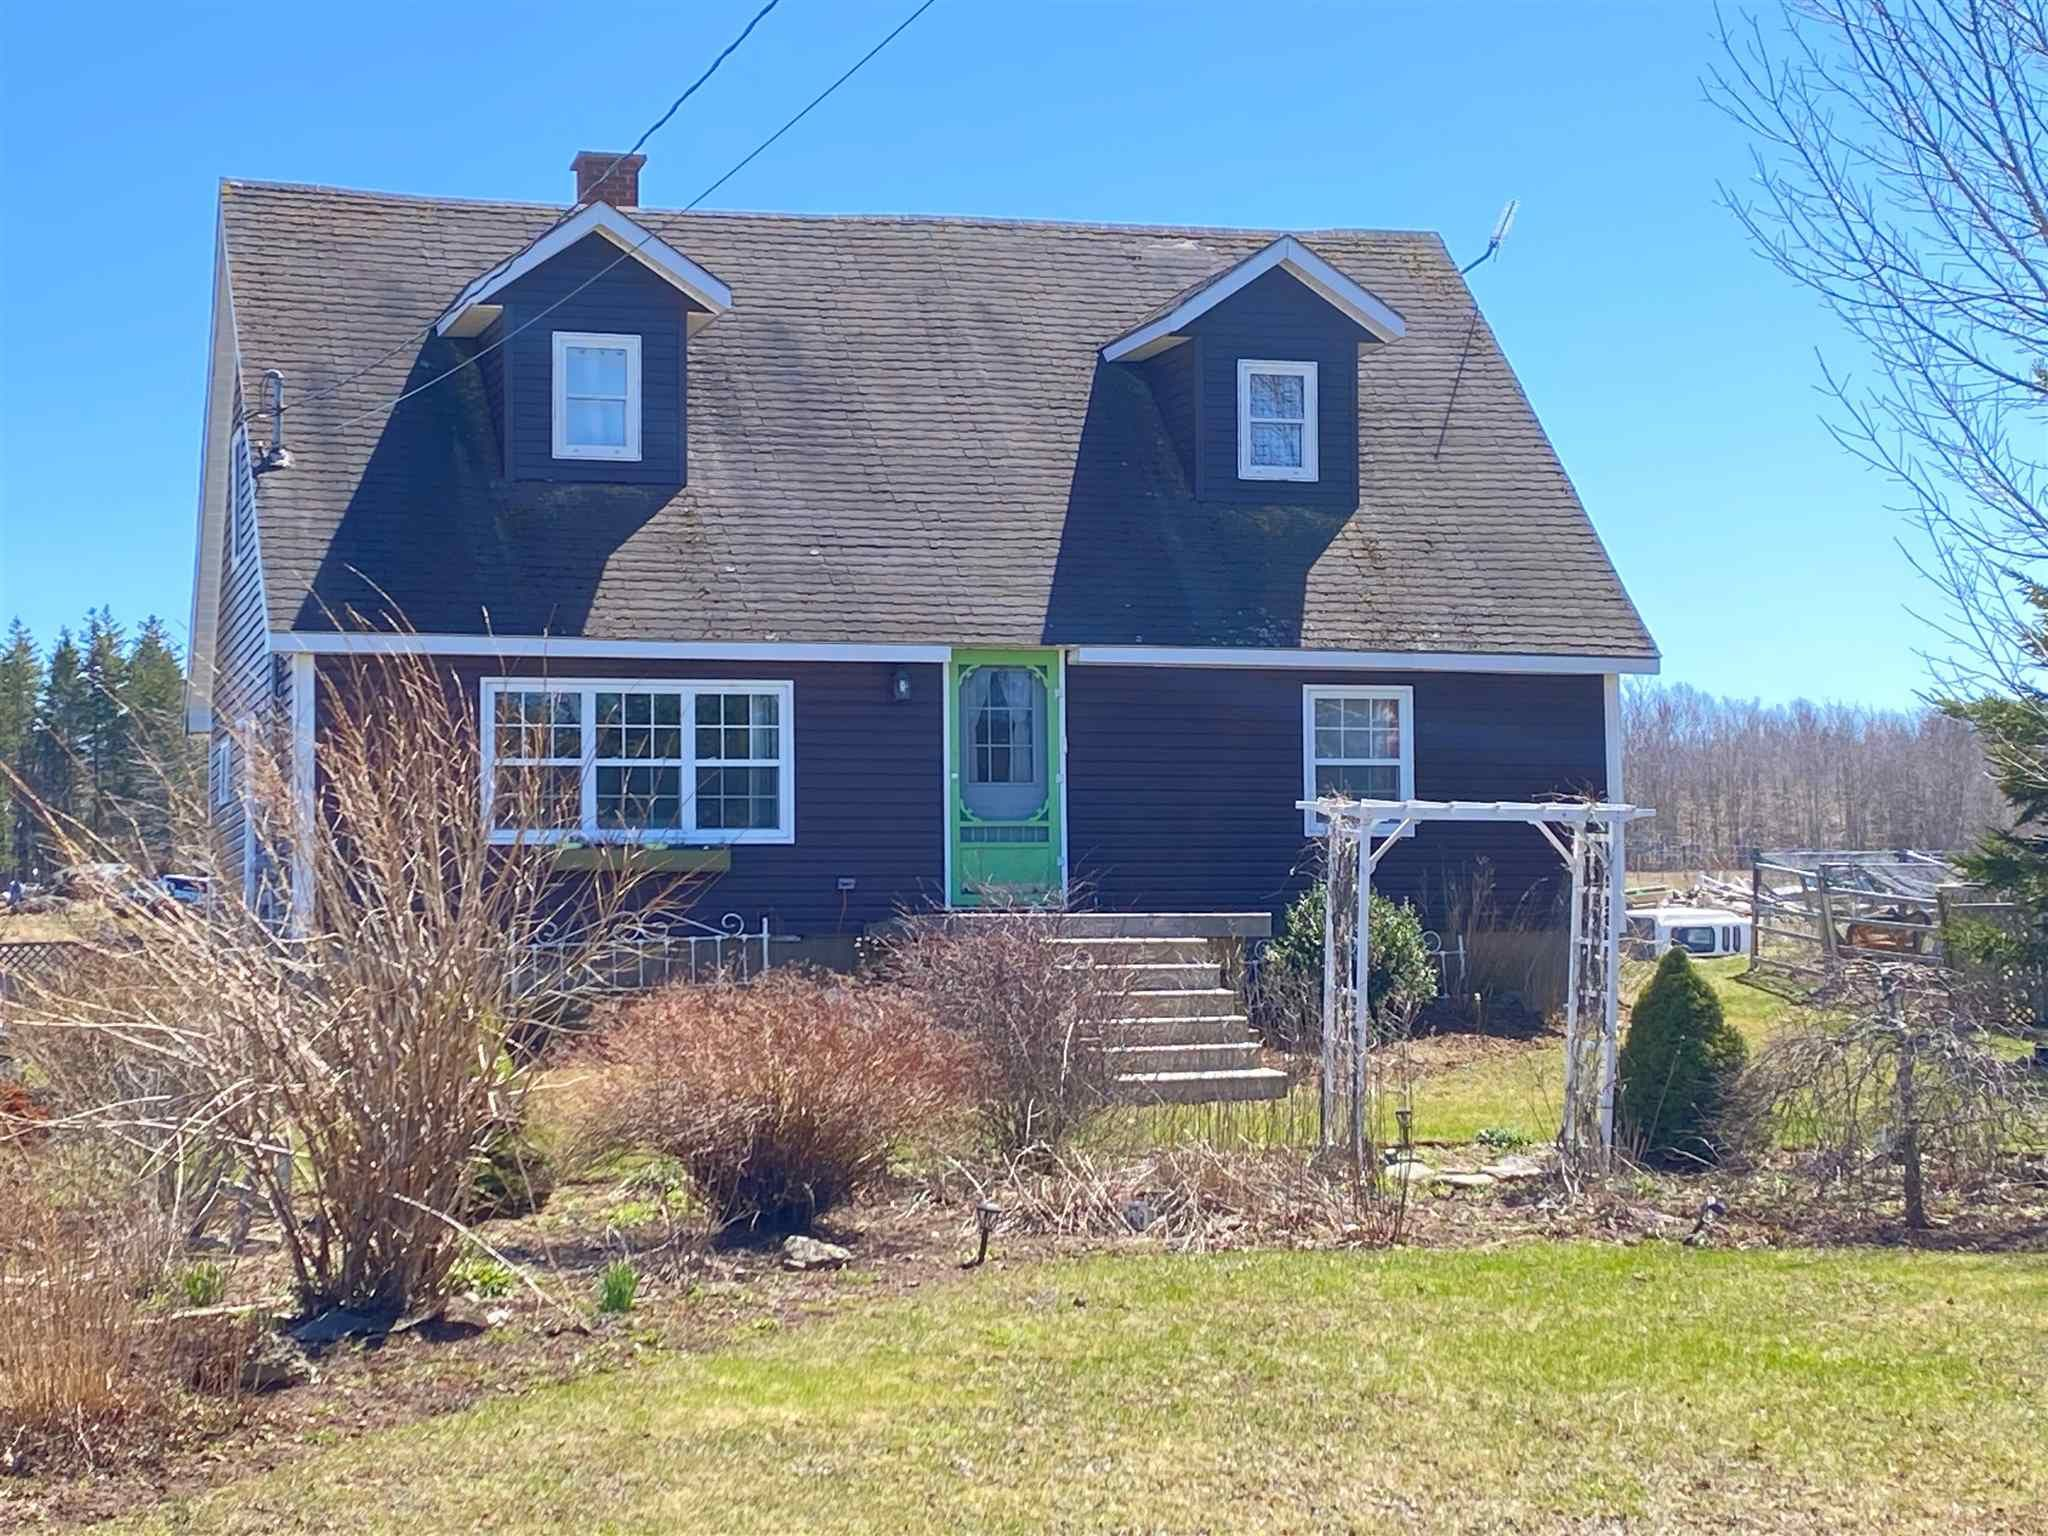 Main Photo: 900 BARLEY Street in Garland: 404-Kings County Residential for sale (Annapolis Valley)  : MLS®# 202109265